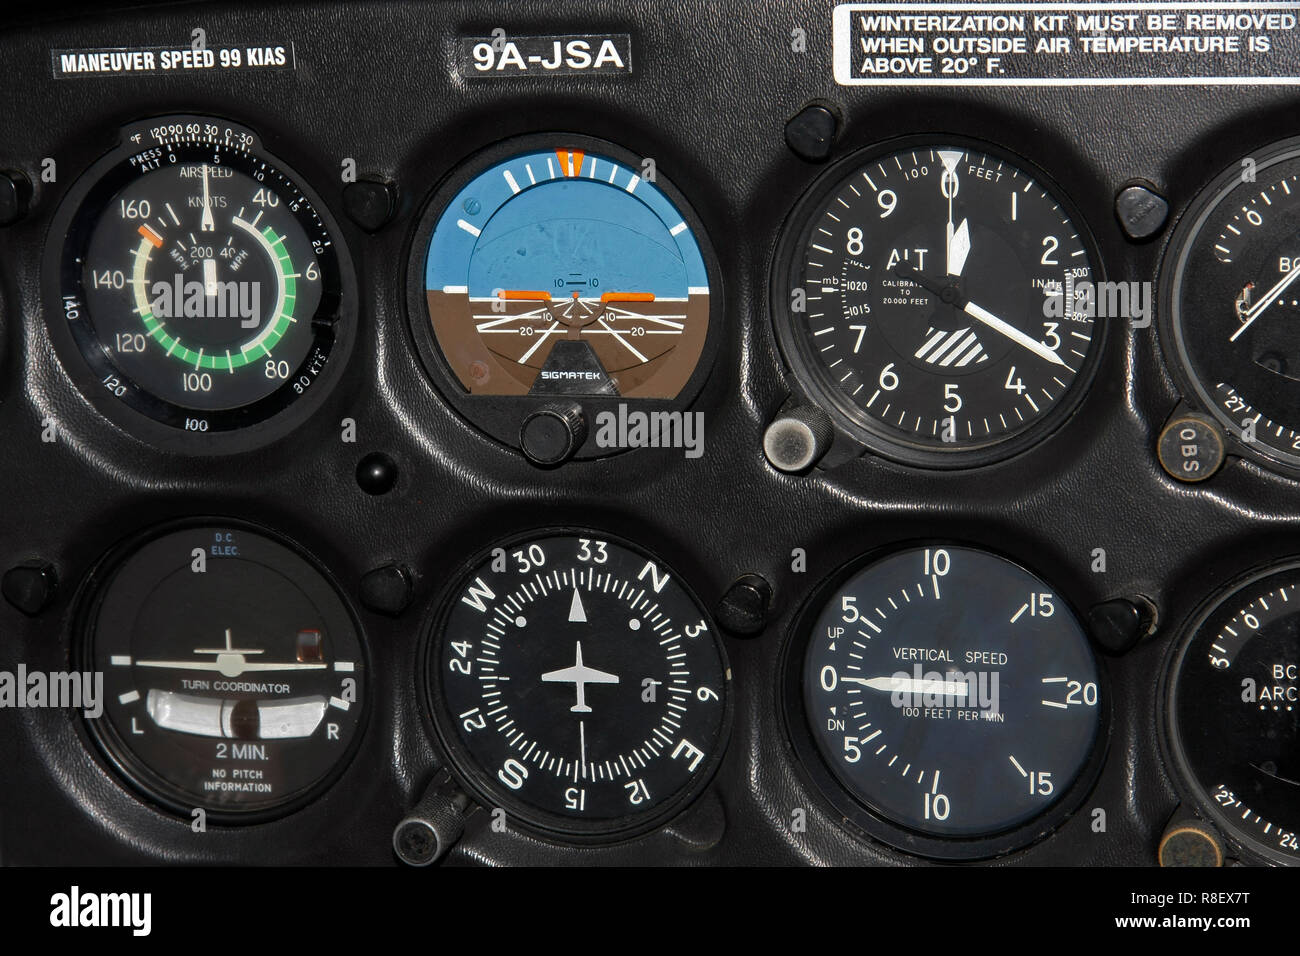 Zagreb, Croatia - February 25, 2012: Instruments in the airplane - Stock Image